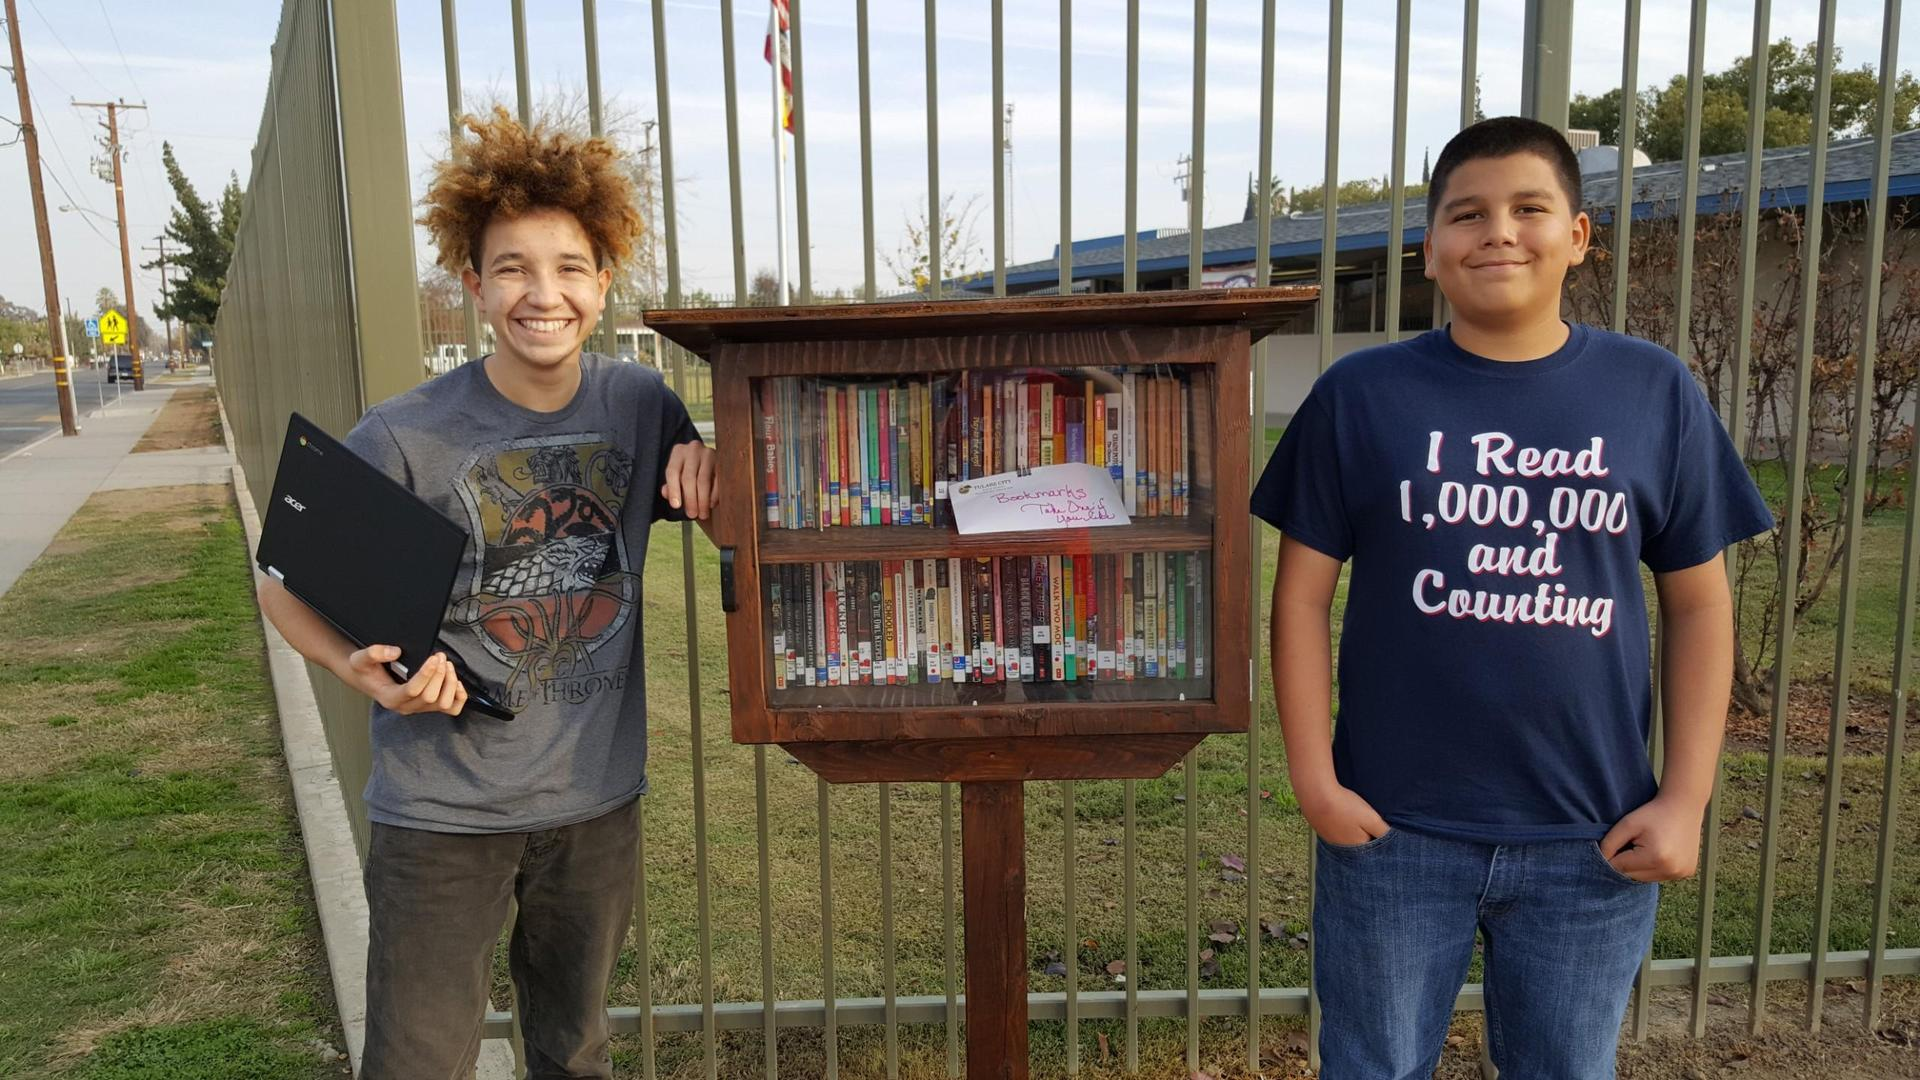 Community Free Library